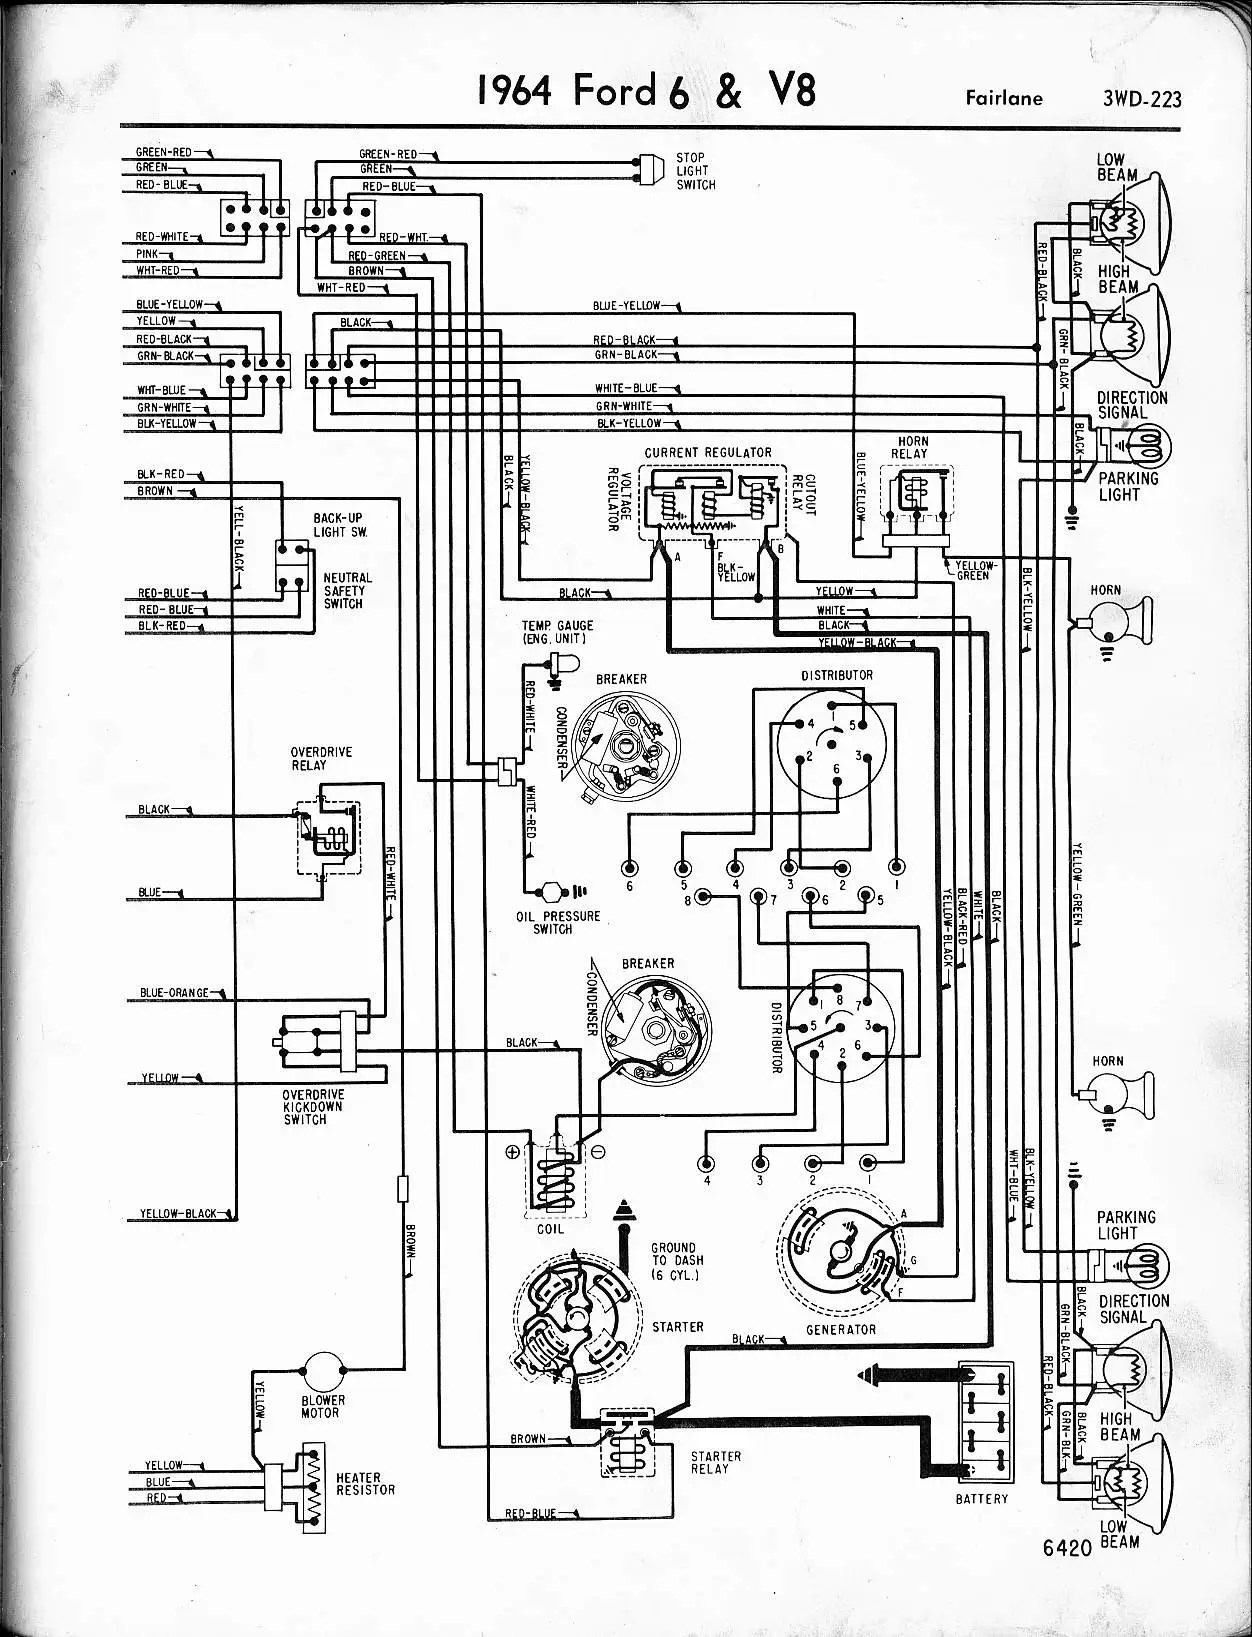 hight resolution of 64 f100 wiring diagram wiring schematic data ford pinto ignition wiring diagram 64 f100 wiring diagram